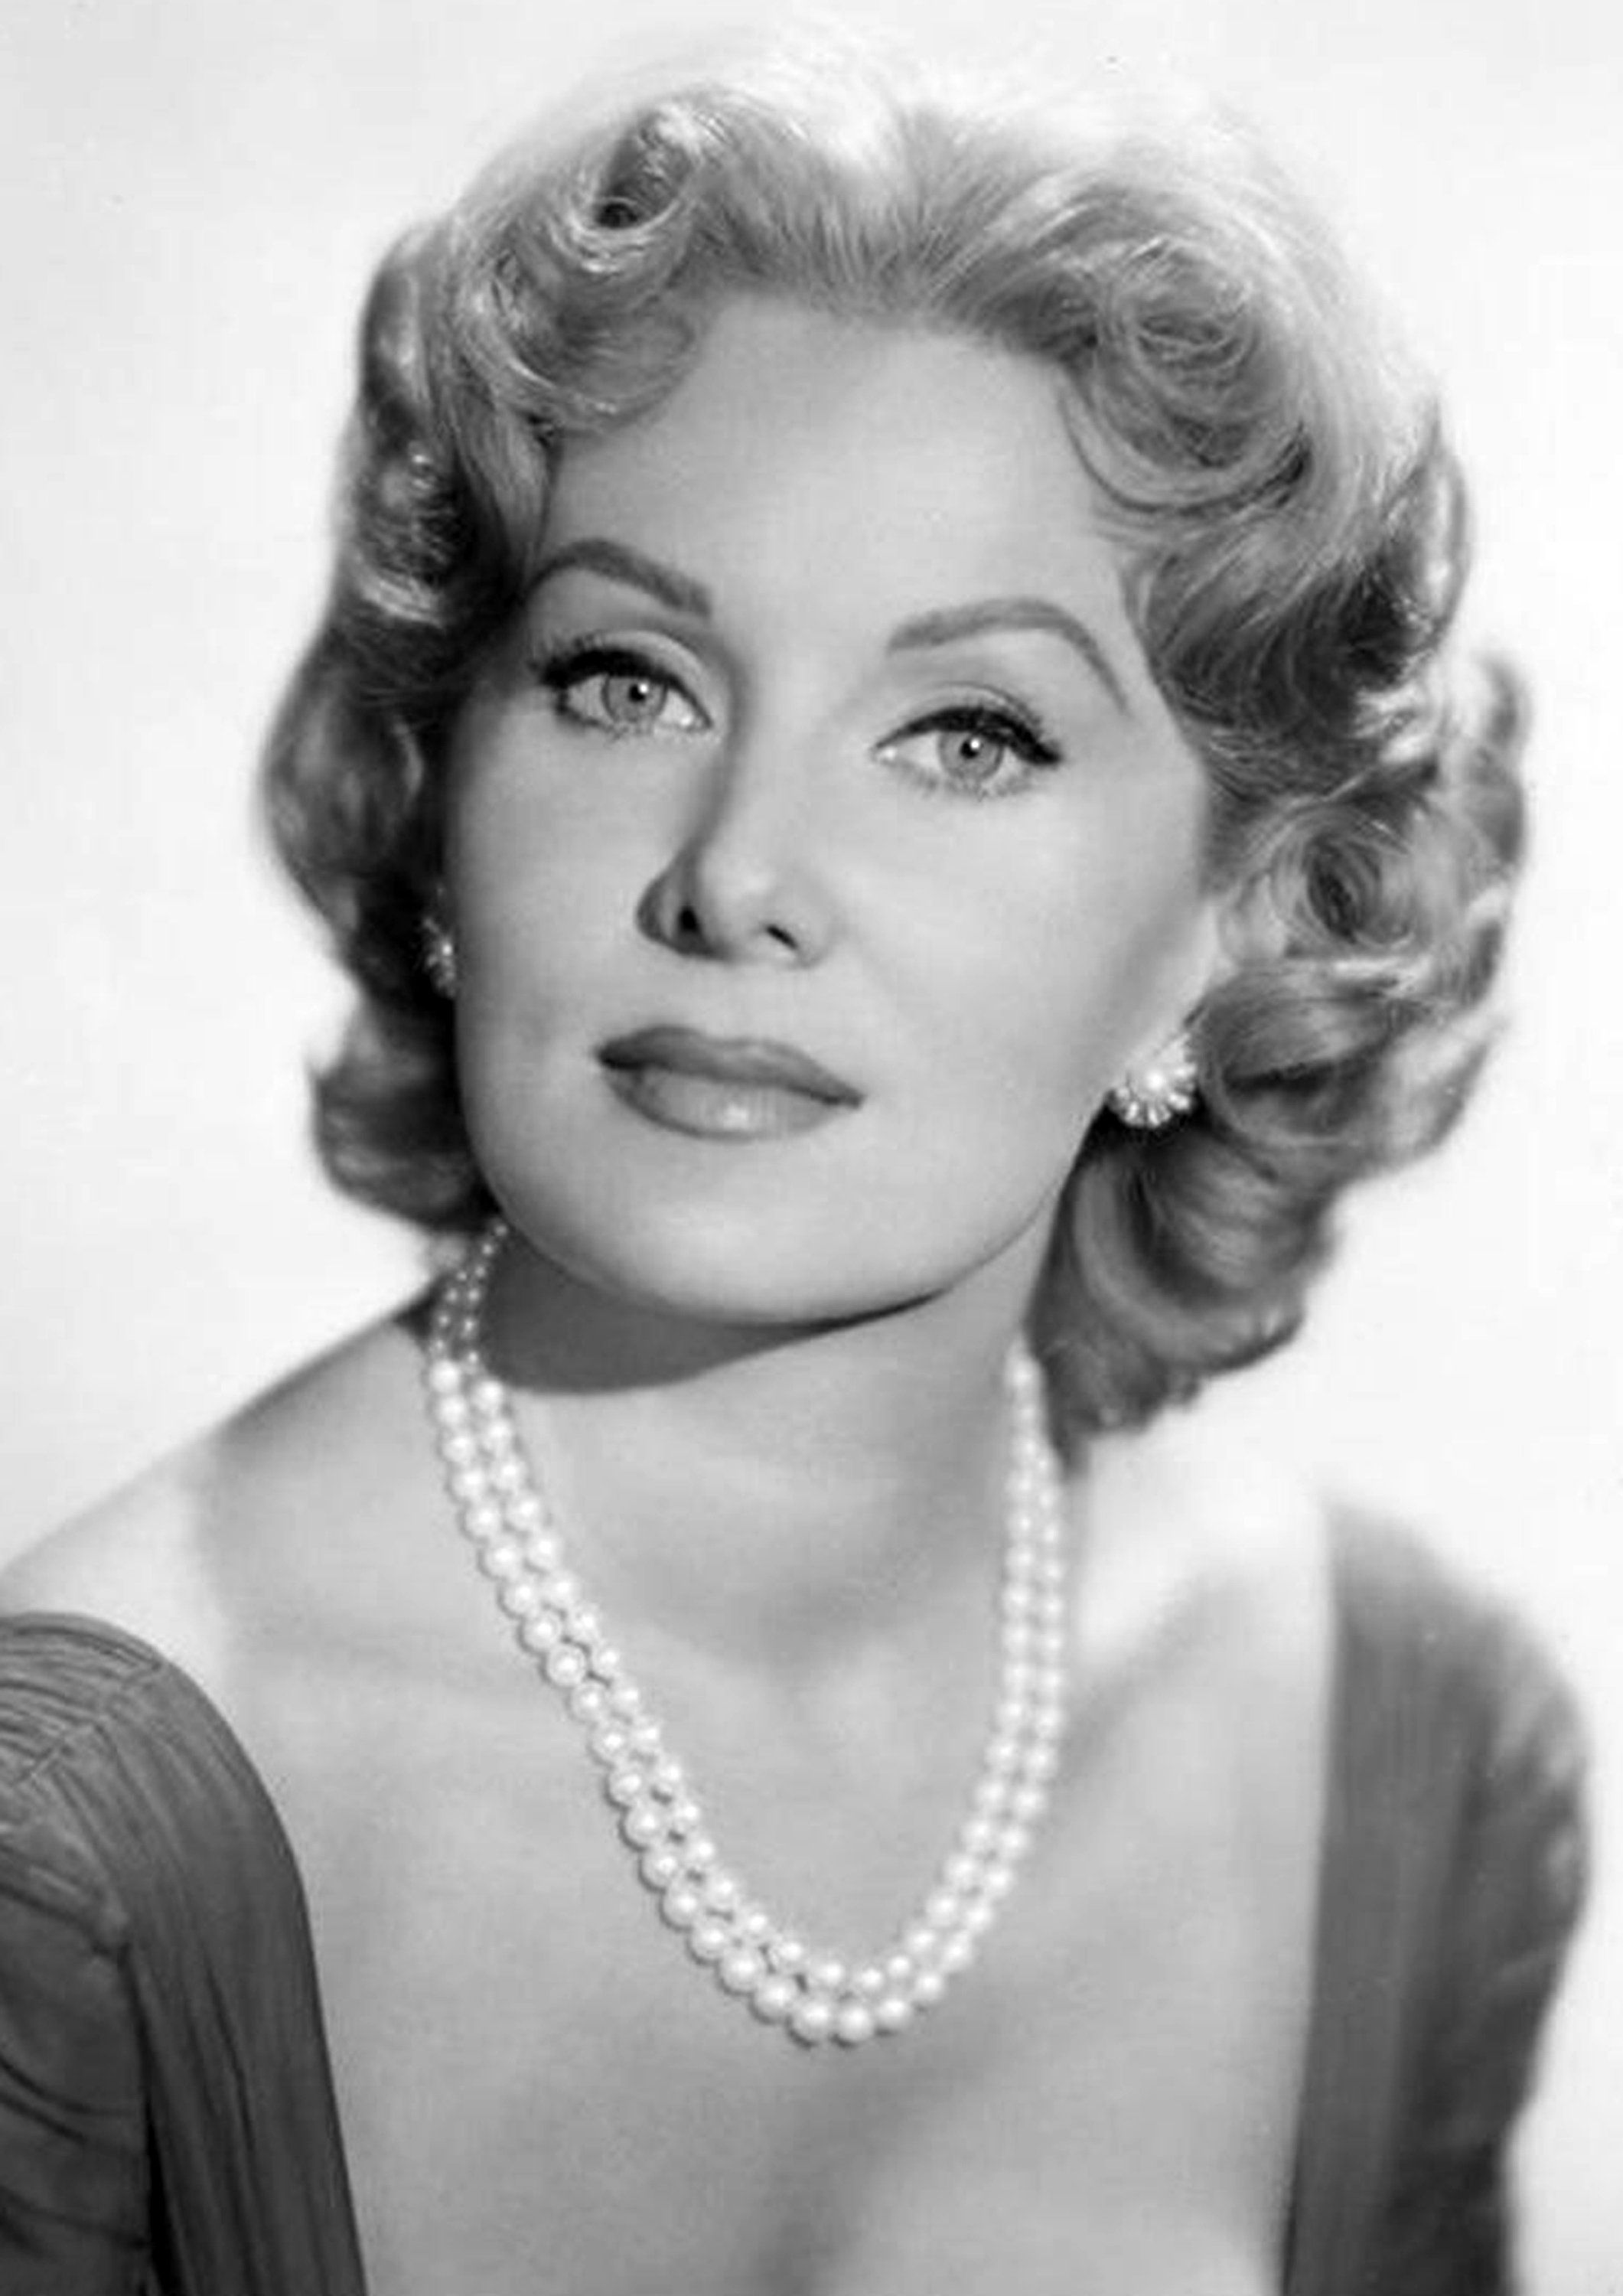 Items similar to Rhonda Fleming Monochrome Photographic Print 13 (A4 Size - 210mm x 297mm - 8.25 x 11.75) Ideal For Framing on Etsy